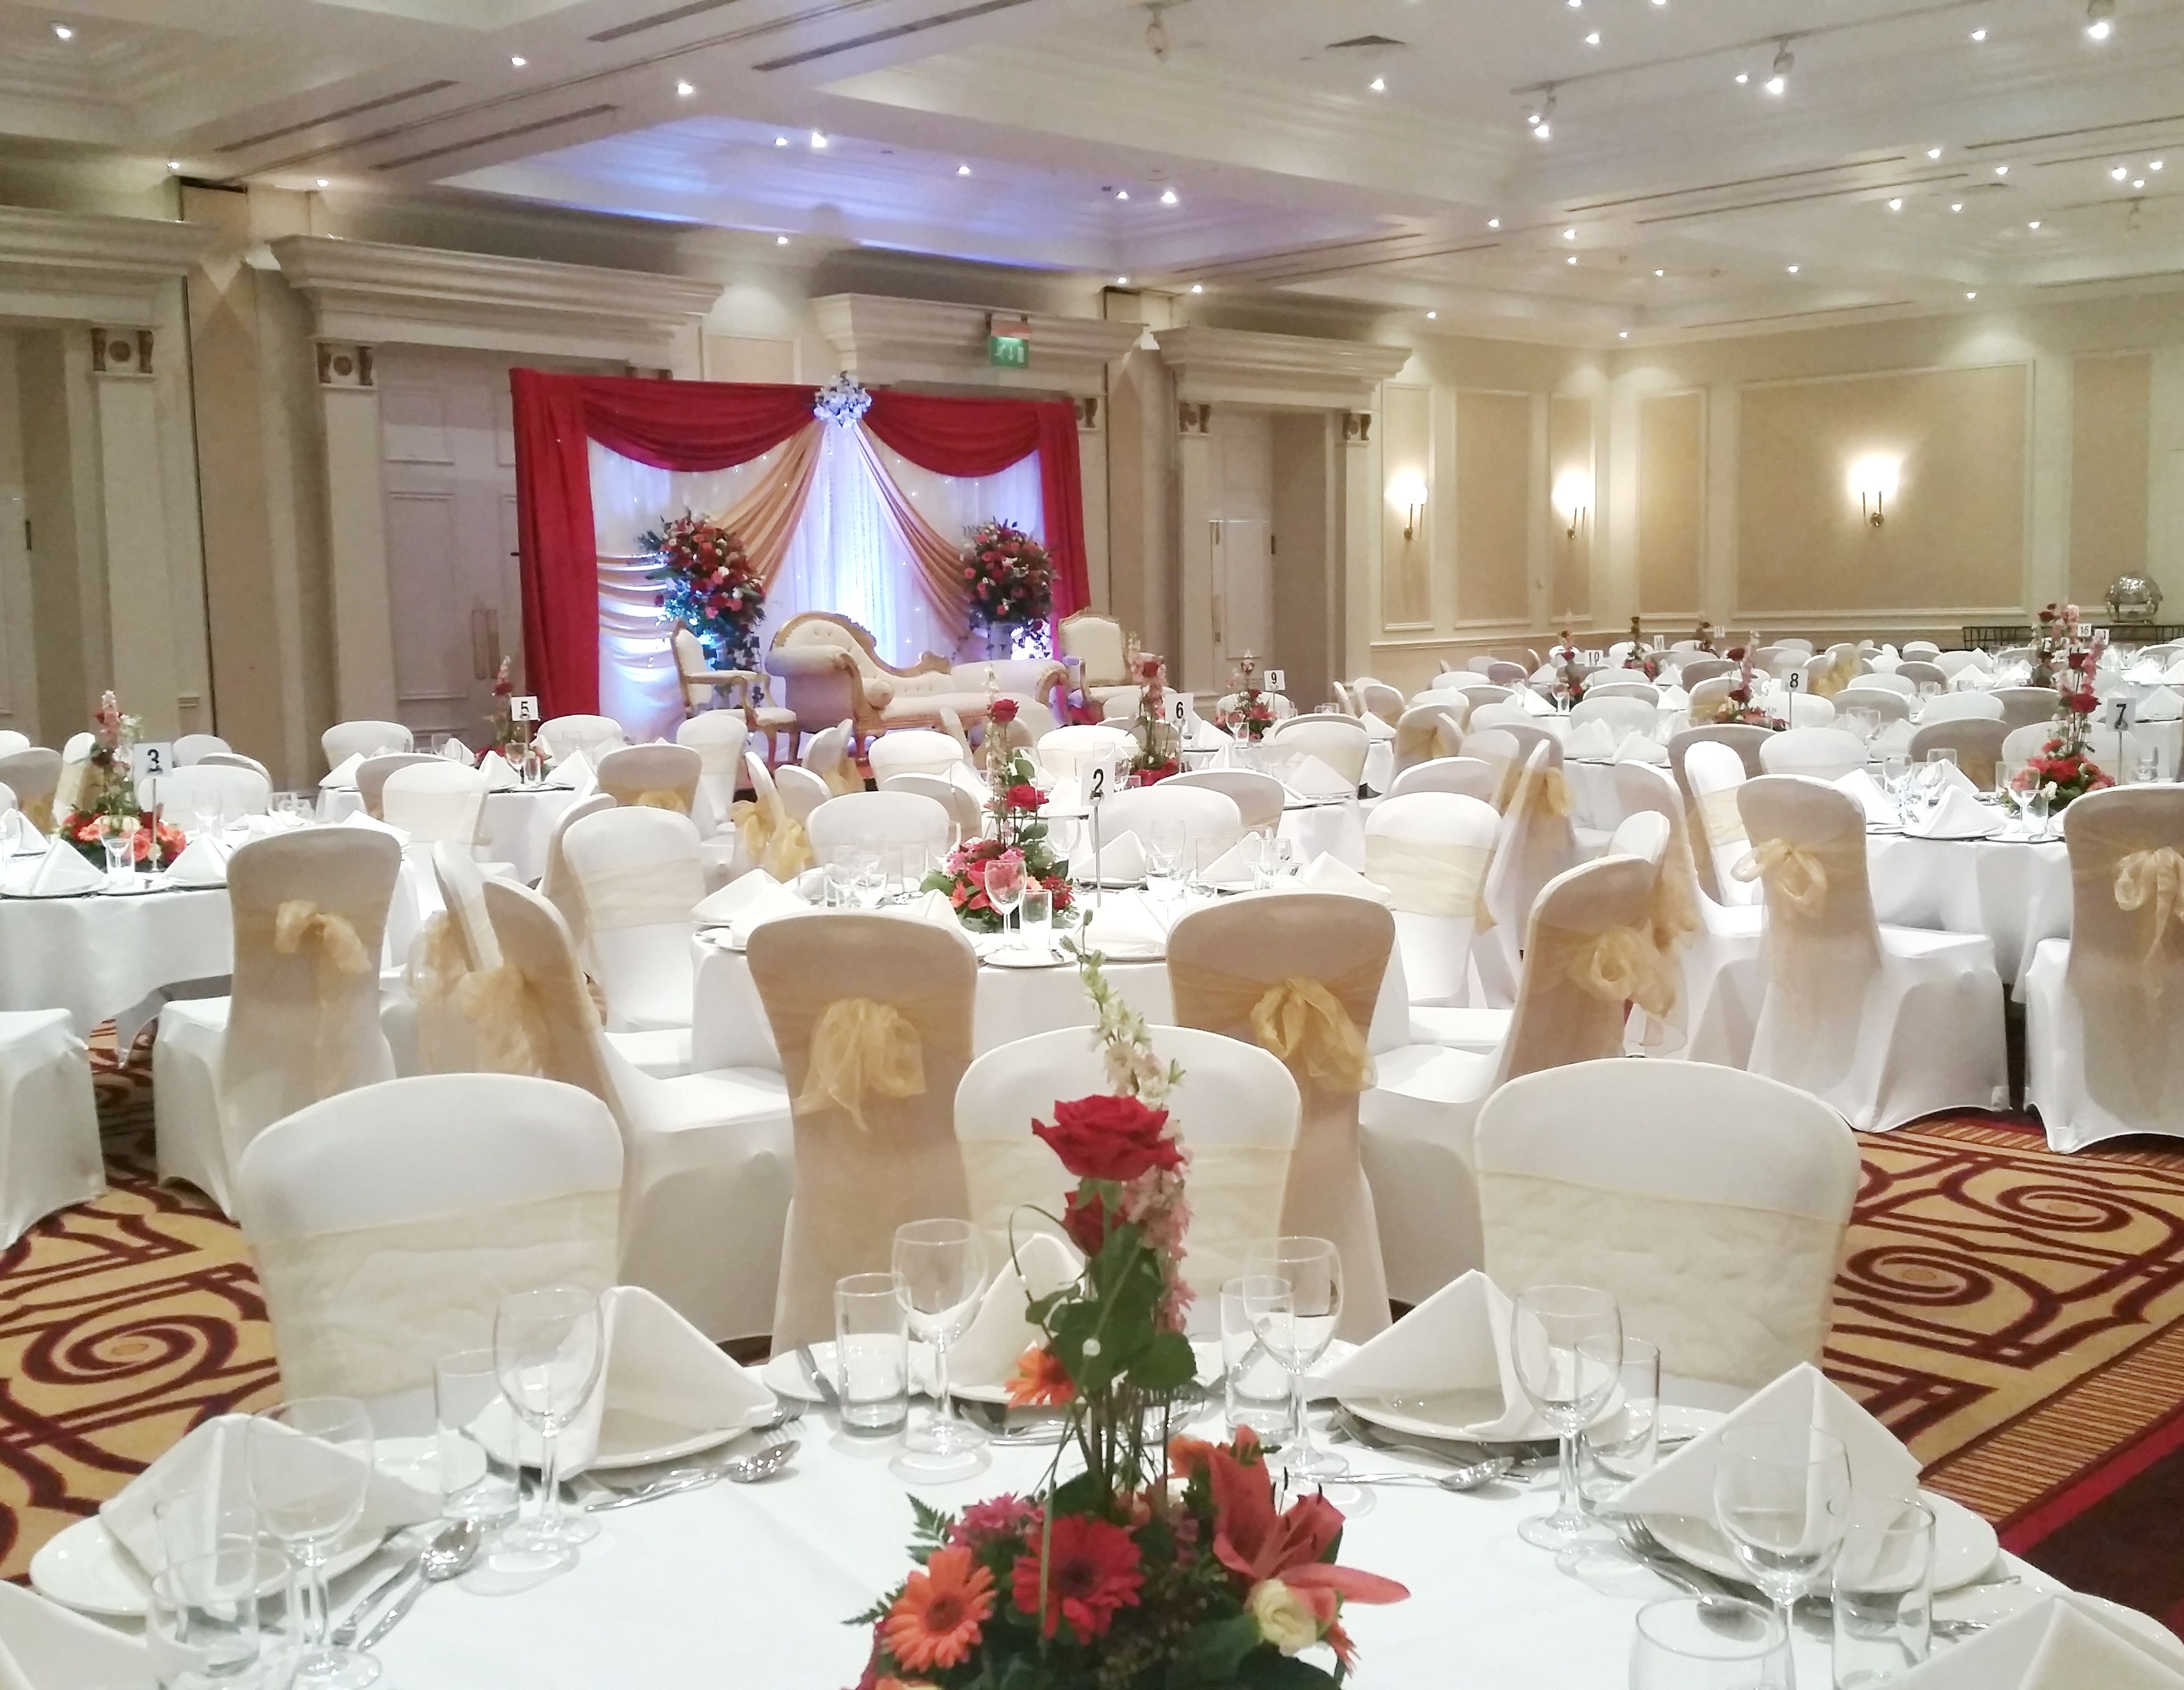 Elegant weddingsetup in our adelaide ballroom the london marriott elegant weddingsetup in our adelaide ballroom the london marriott hotel regents park is perfect for wedding ceremonies receptions of all sizes junglespirit Images